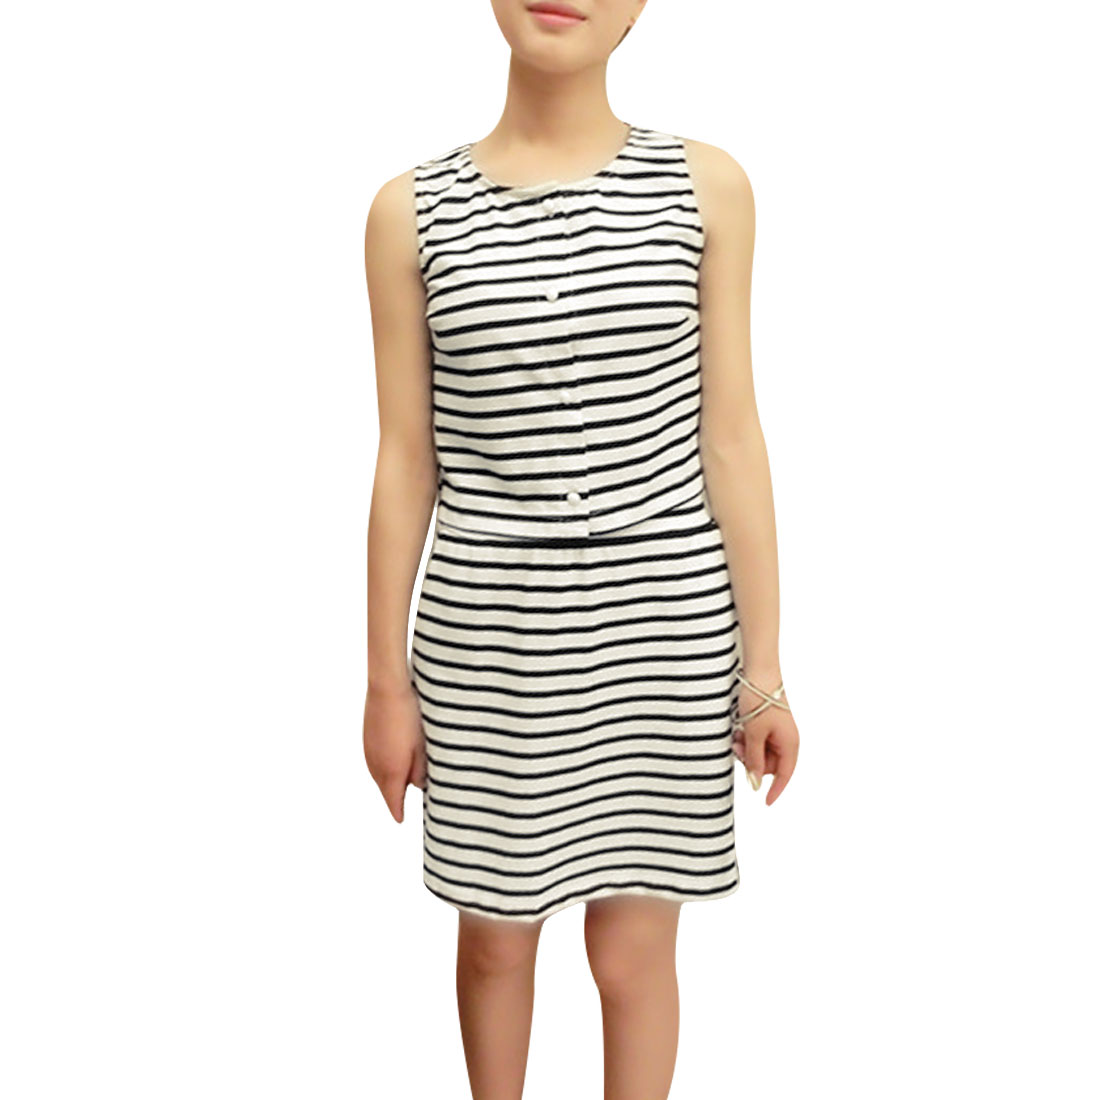 Ladies Single-breasted Round Neck Tops w Striped Skirts Black White XS